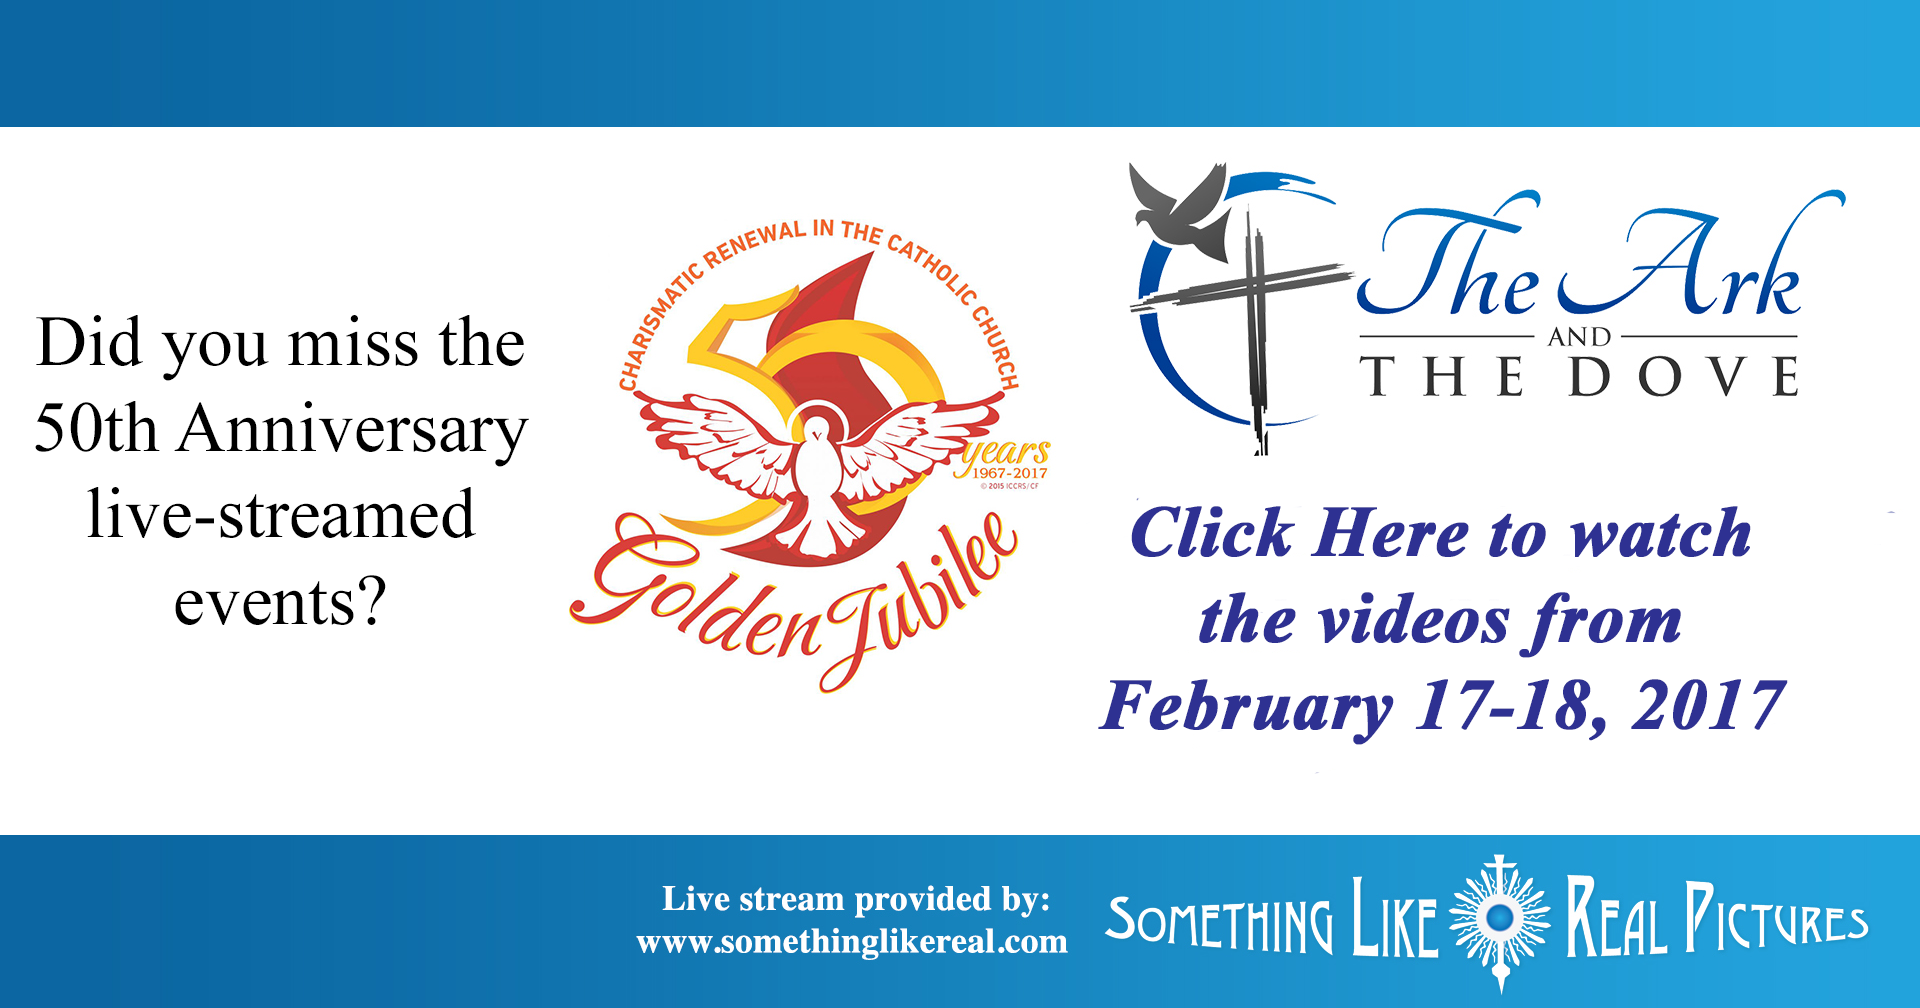 Live Streaming of the 50th Anniversary Celebration of the Catholic Charismatic Renewal and the Duquesne Weekend. Register at: www.somethinglikereal.com/thearkandthedove